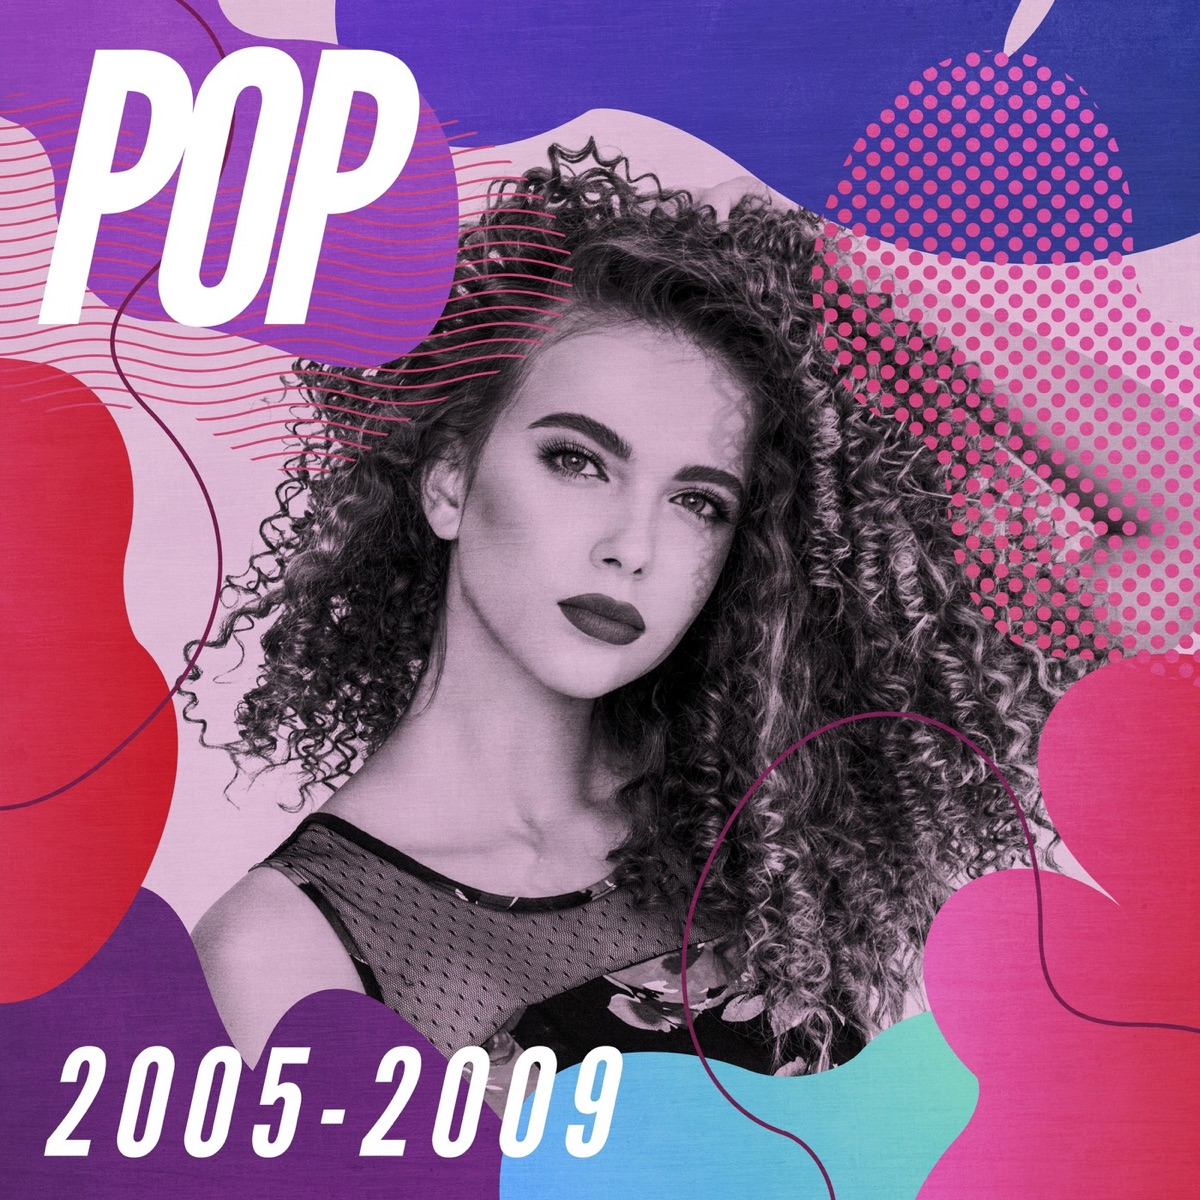 Pop 2005-2009 Album Cover by Various Artists